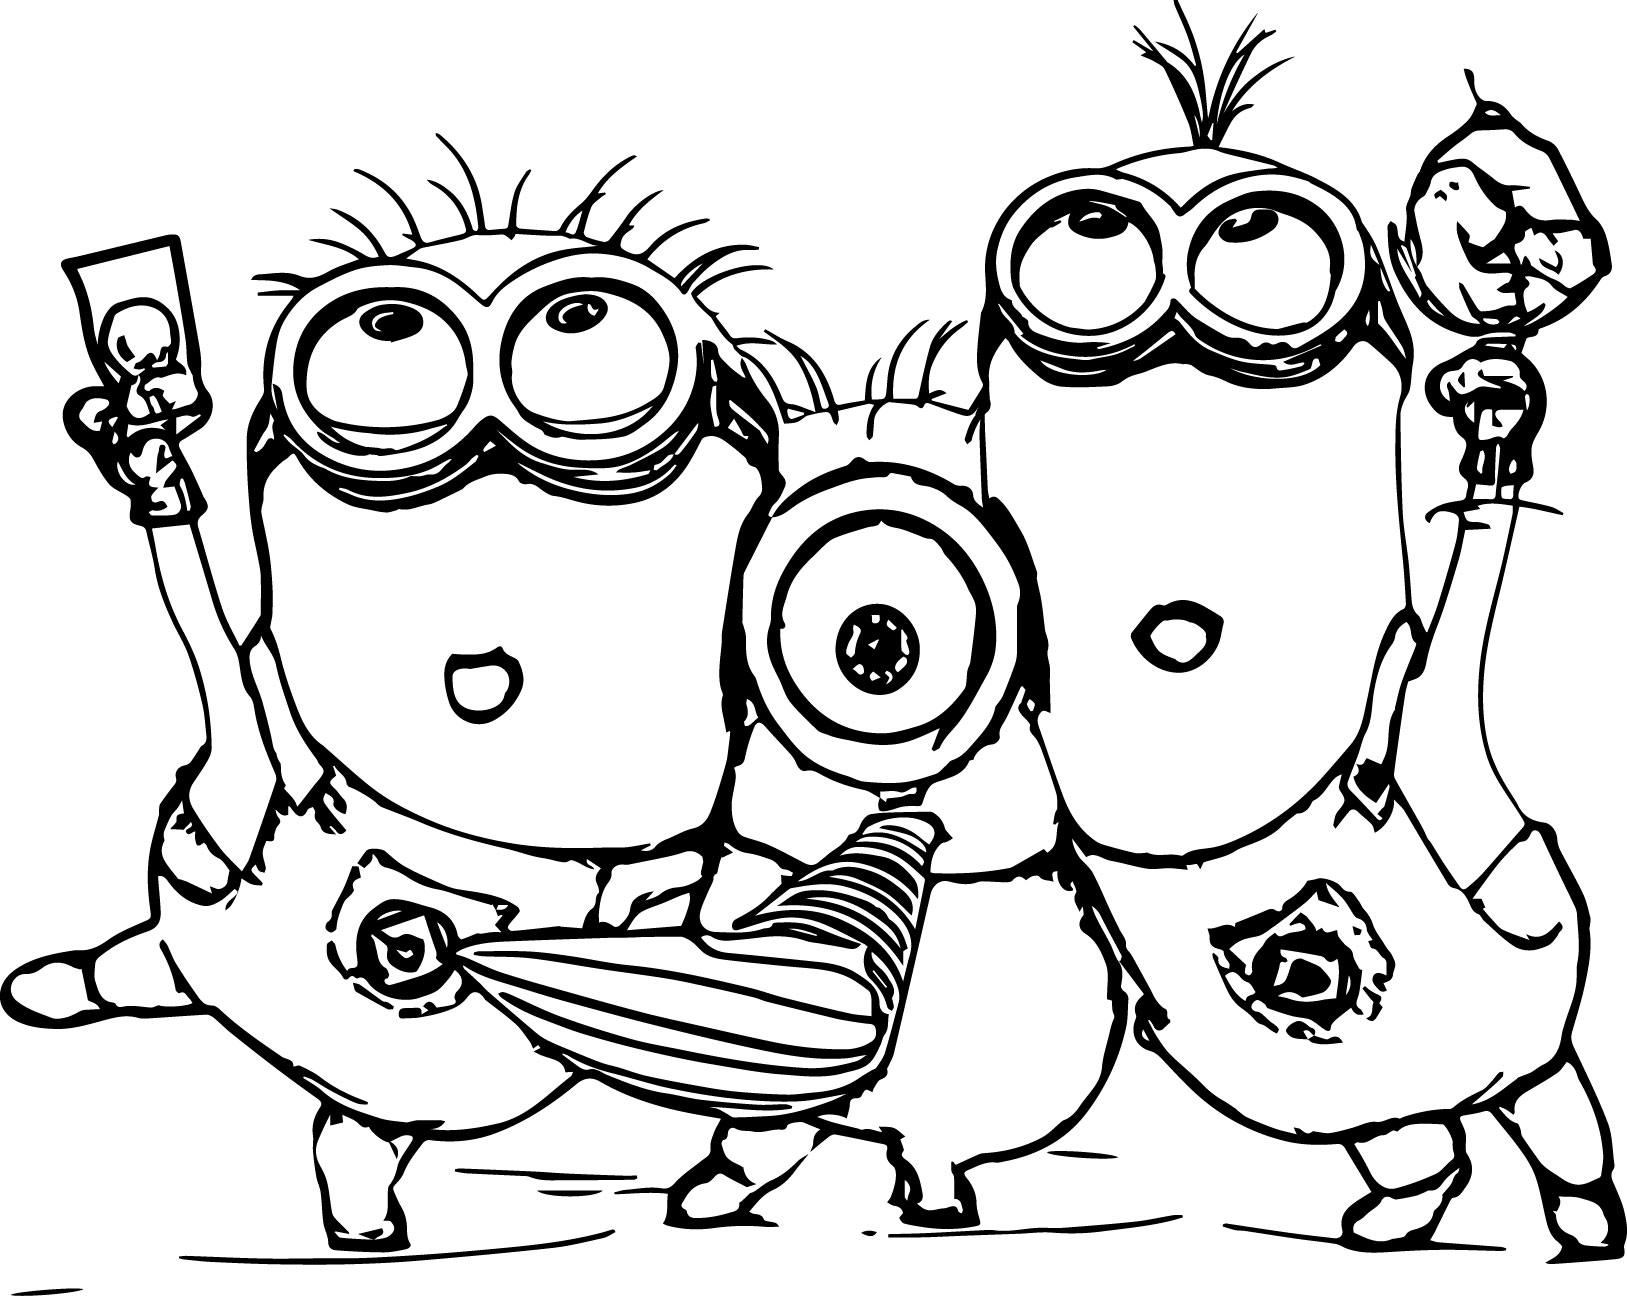 minions print minion coloring pages best coloring pages for kids minions print 1 2